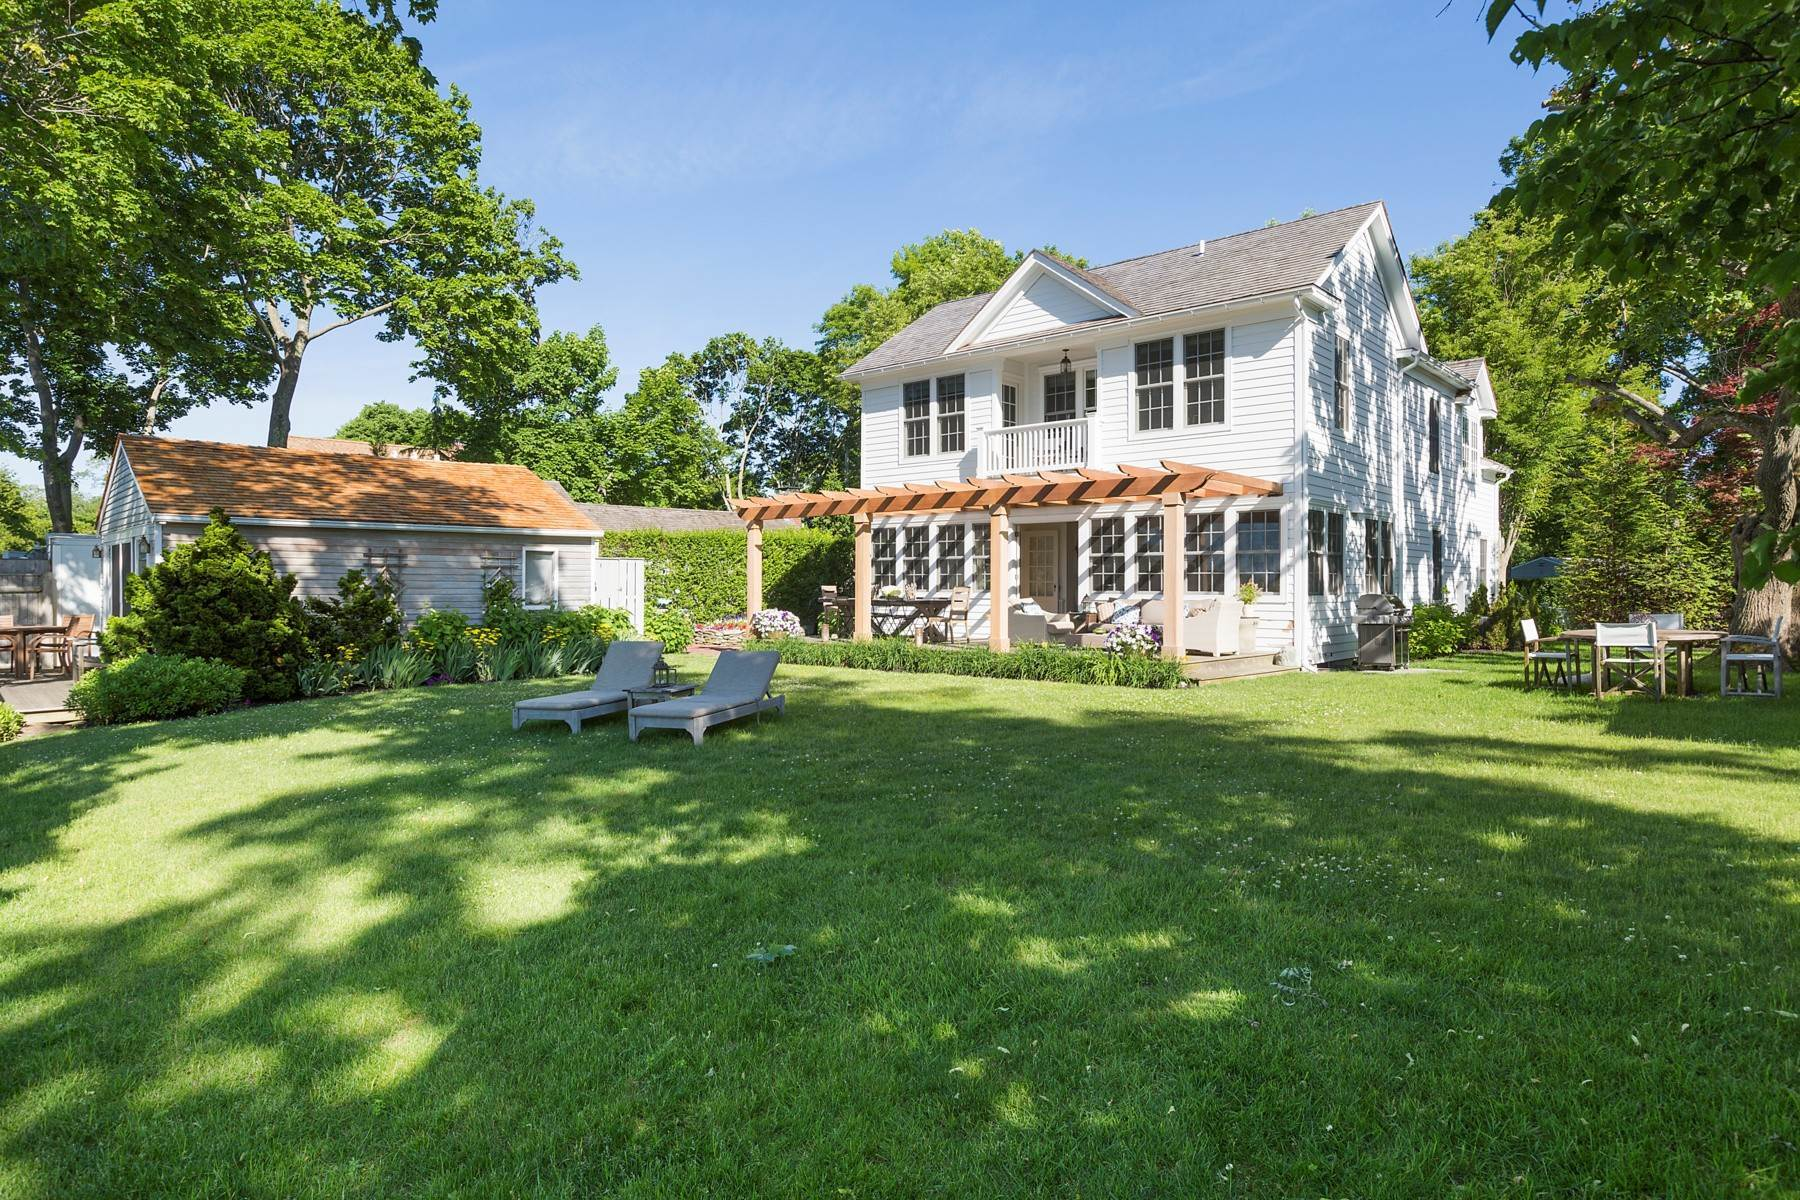 Single Family Home at Classic Waterfront On Sag Harbor Cove Sag Harbor, NY 11963